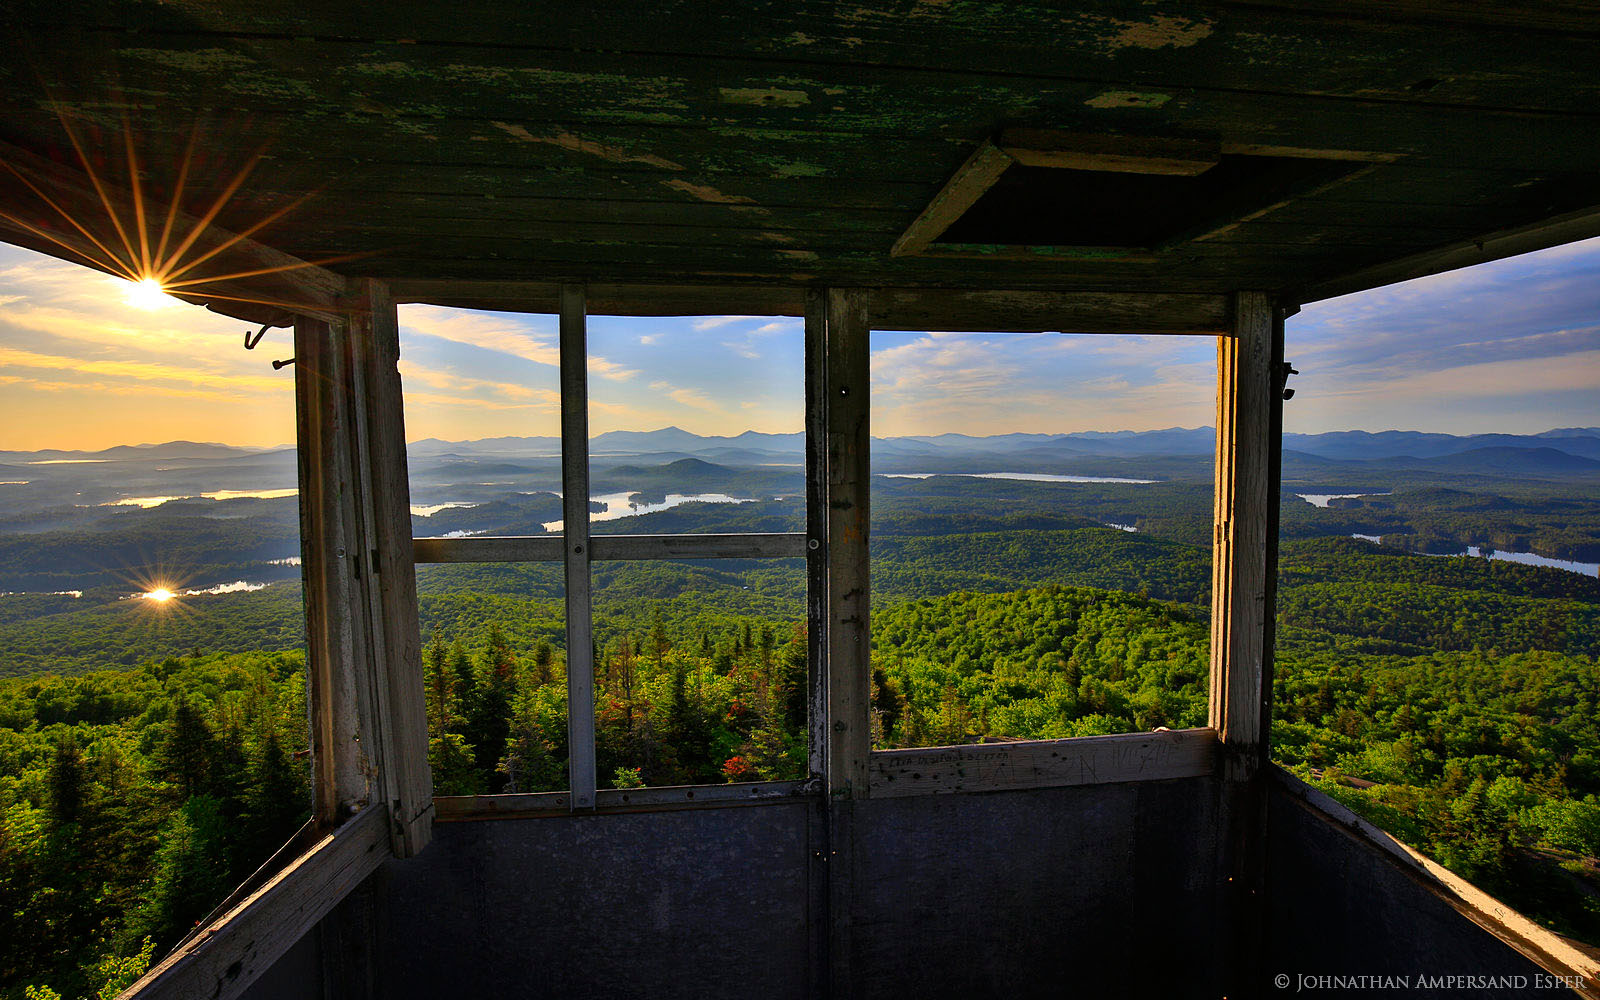 St Regis Mt Firetower Cabin Window View Of Adirondack High Peaks